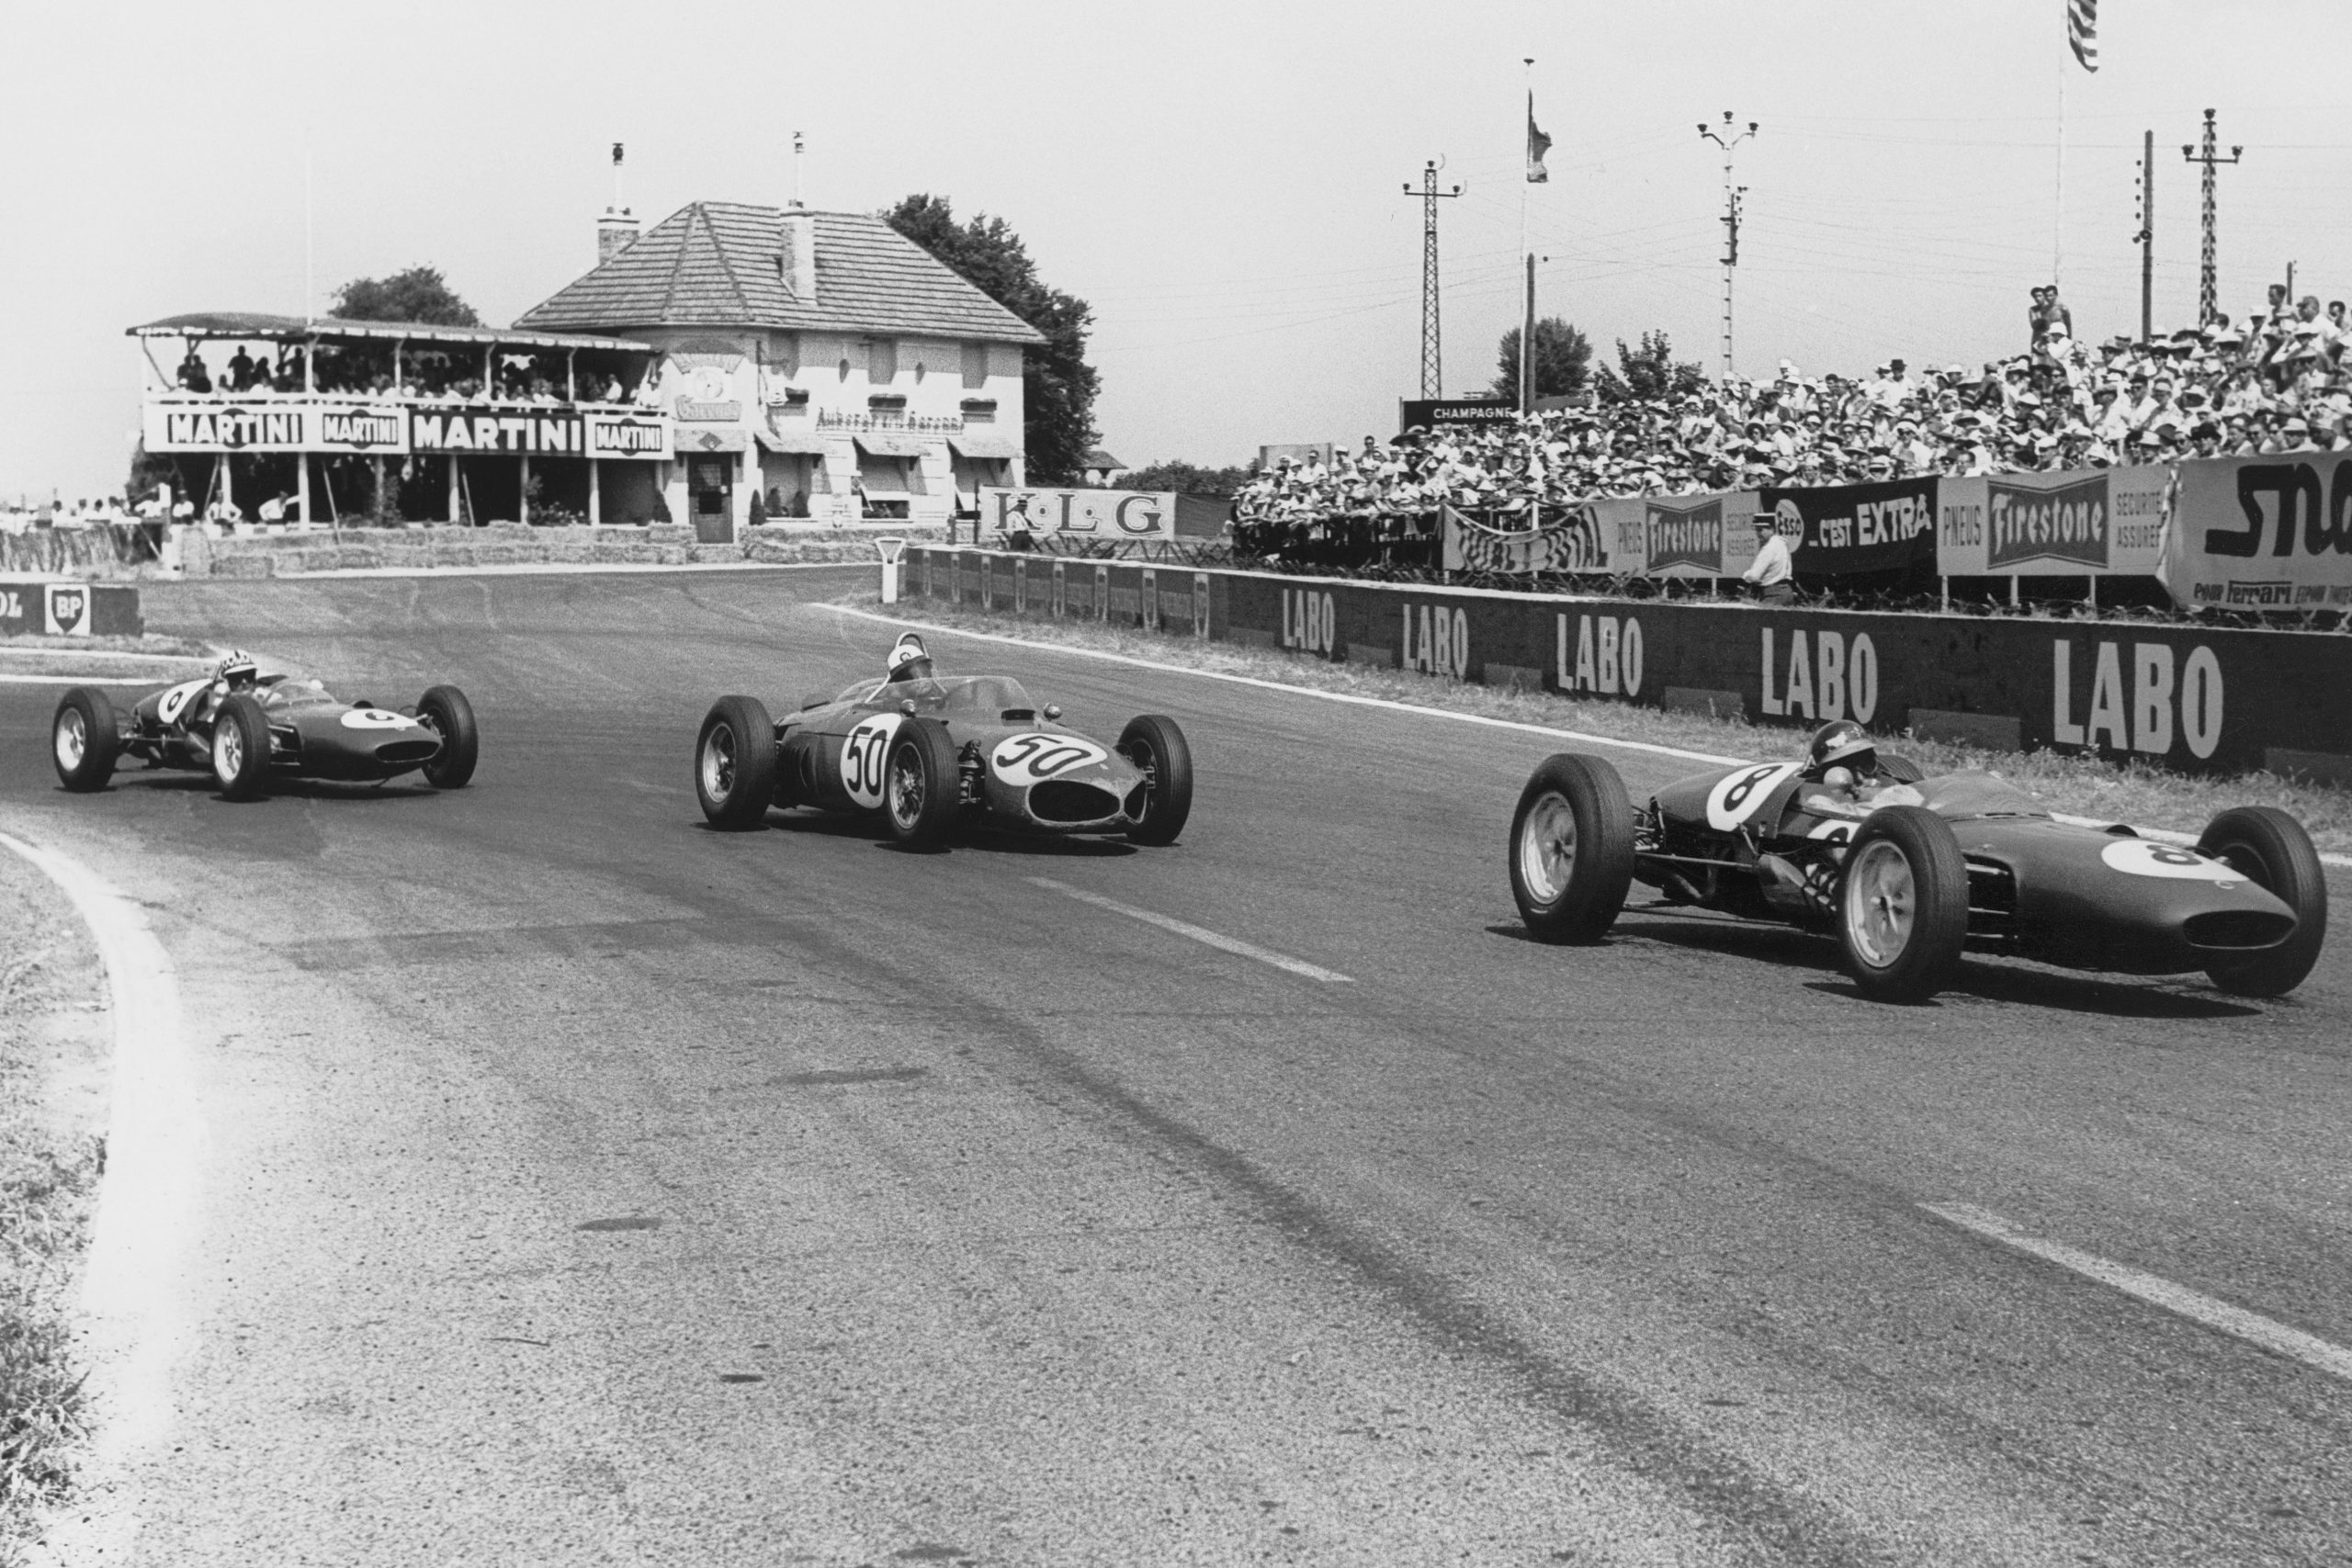 Jim Clark in a Lotus 21-Climax leads Giancarlo Baghetti in his Ferrari Dino 156 and Innes Ireland in a Lotus 21-Climax.